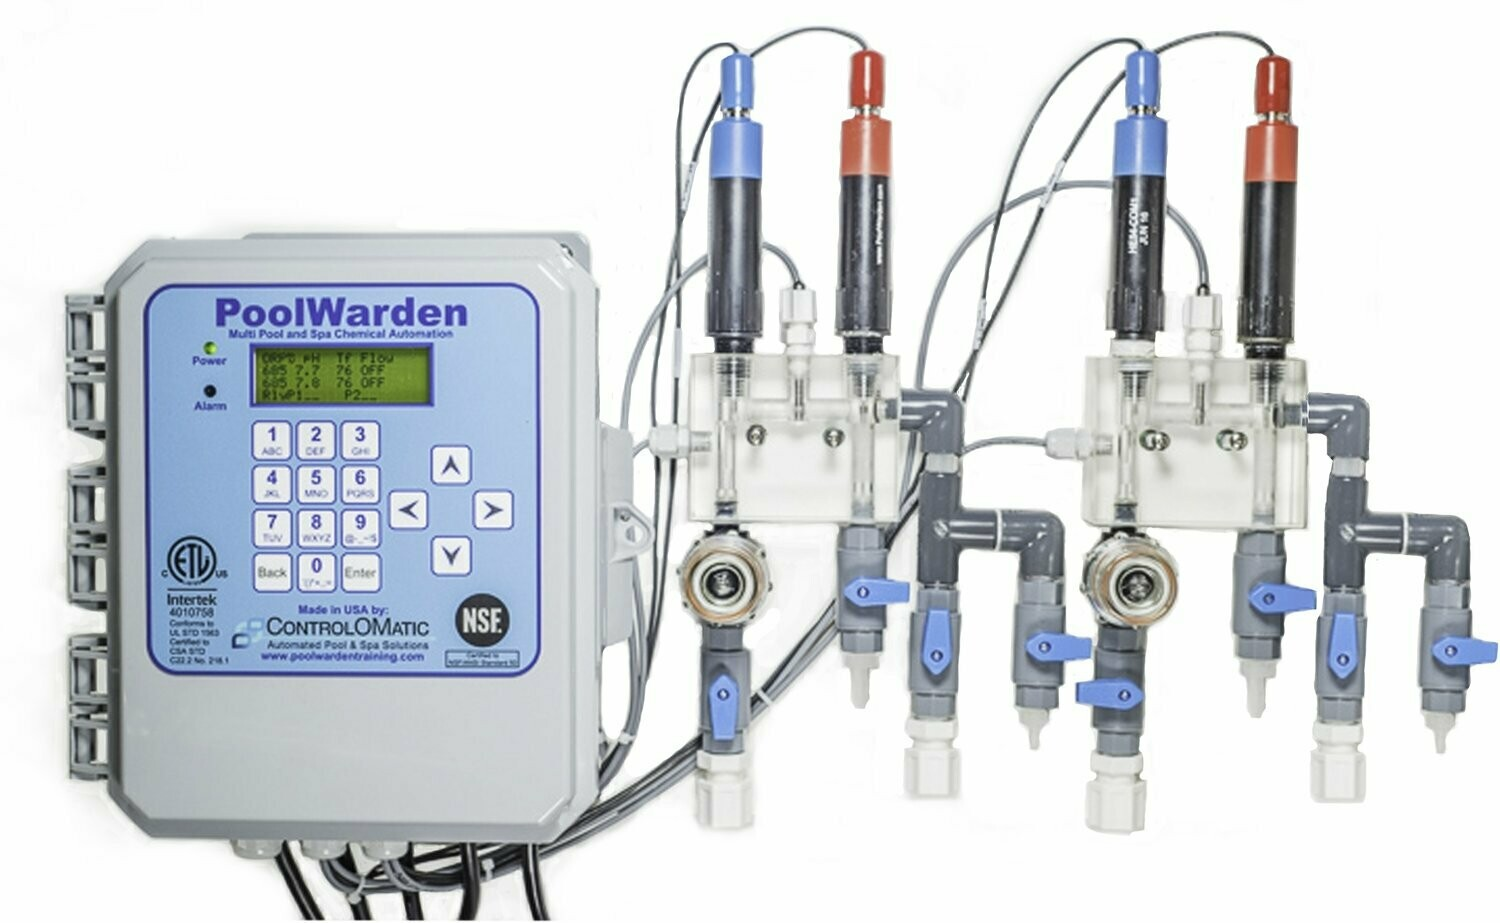 PoolWarden Pool Chemical Control System (Commercial)